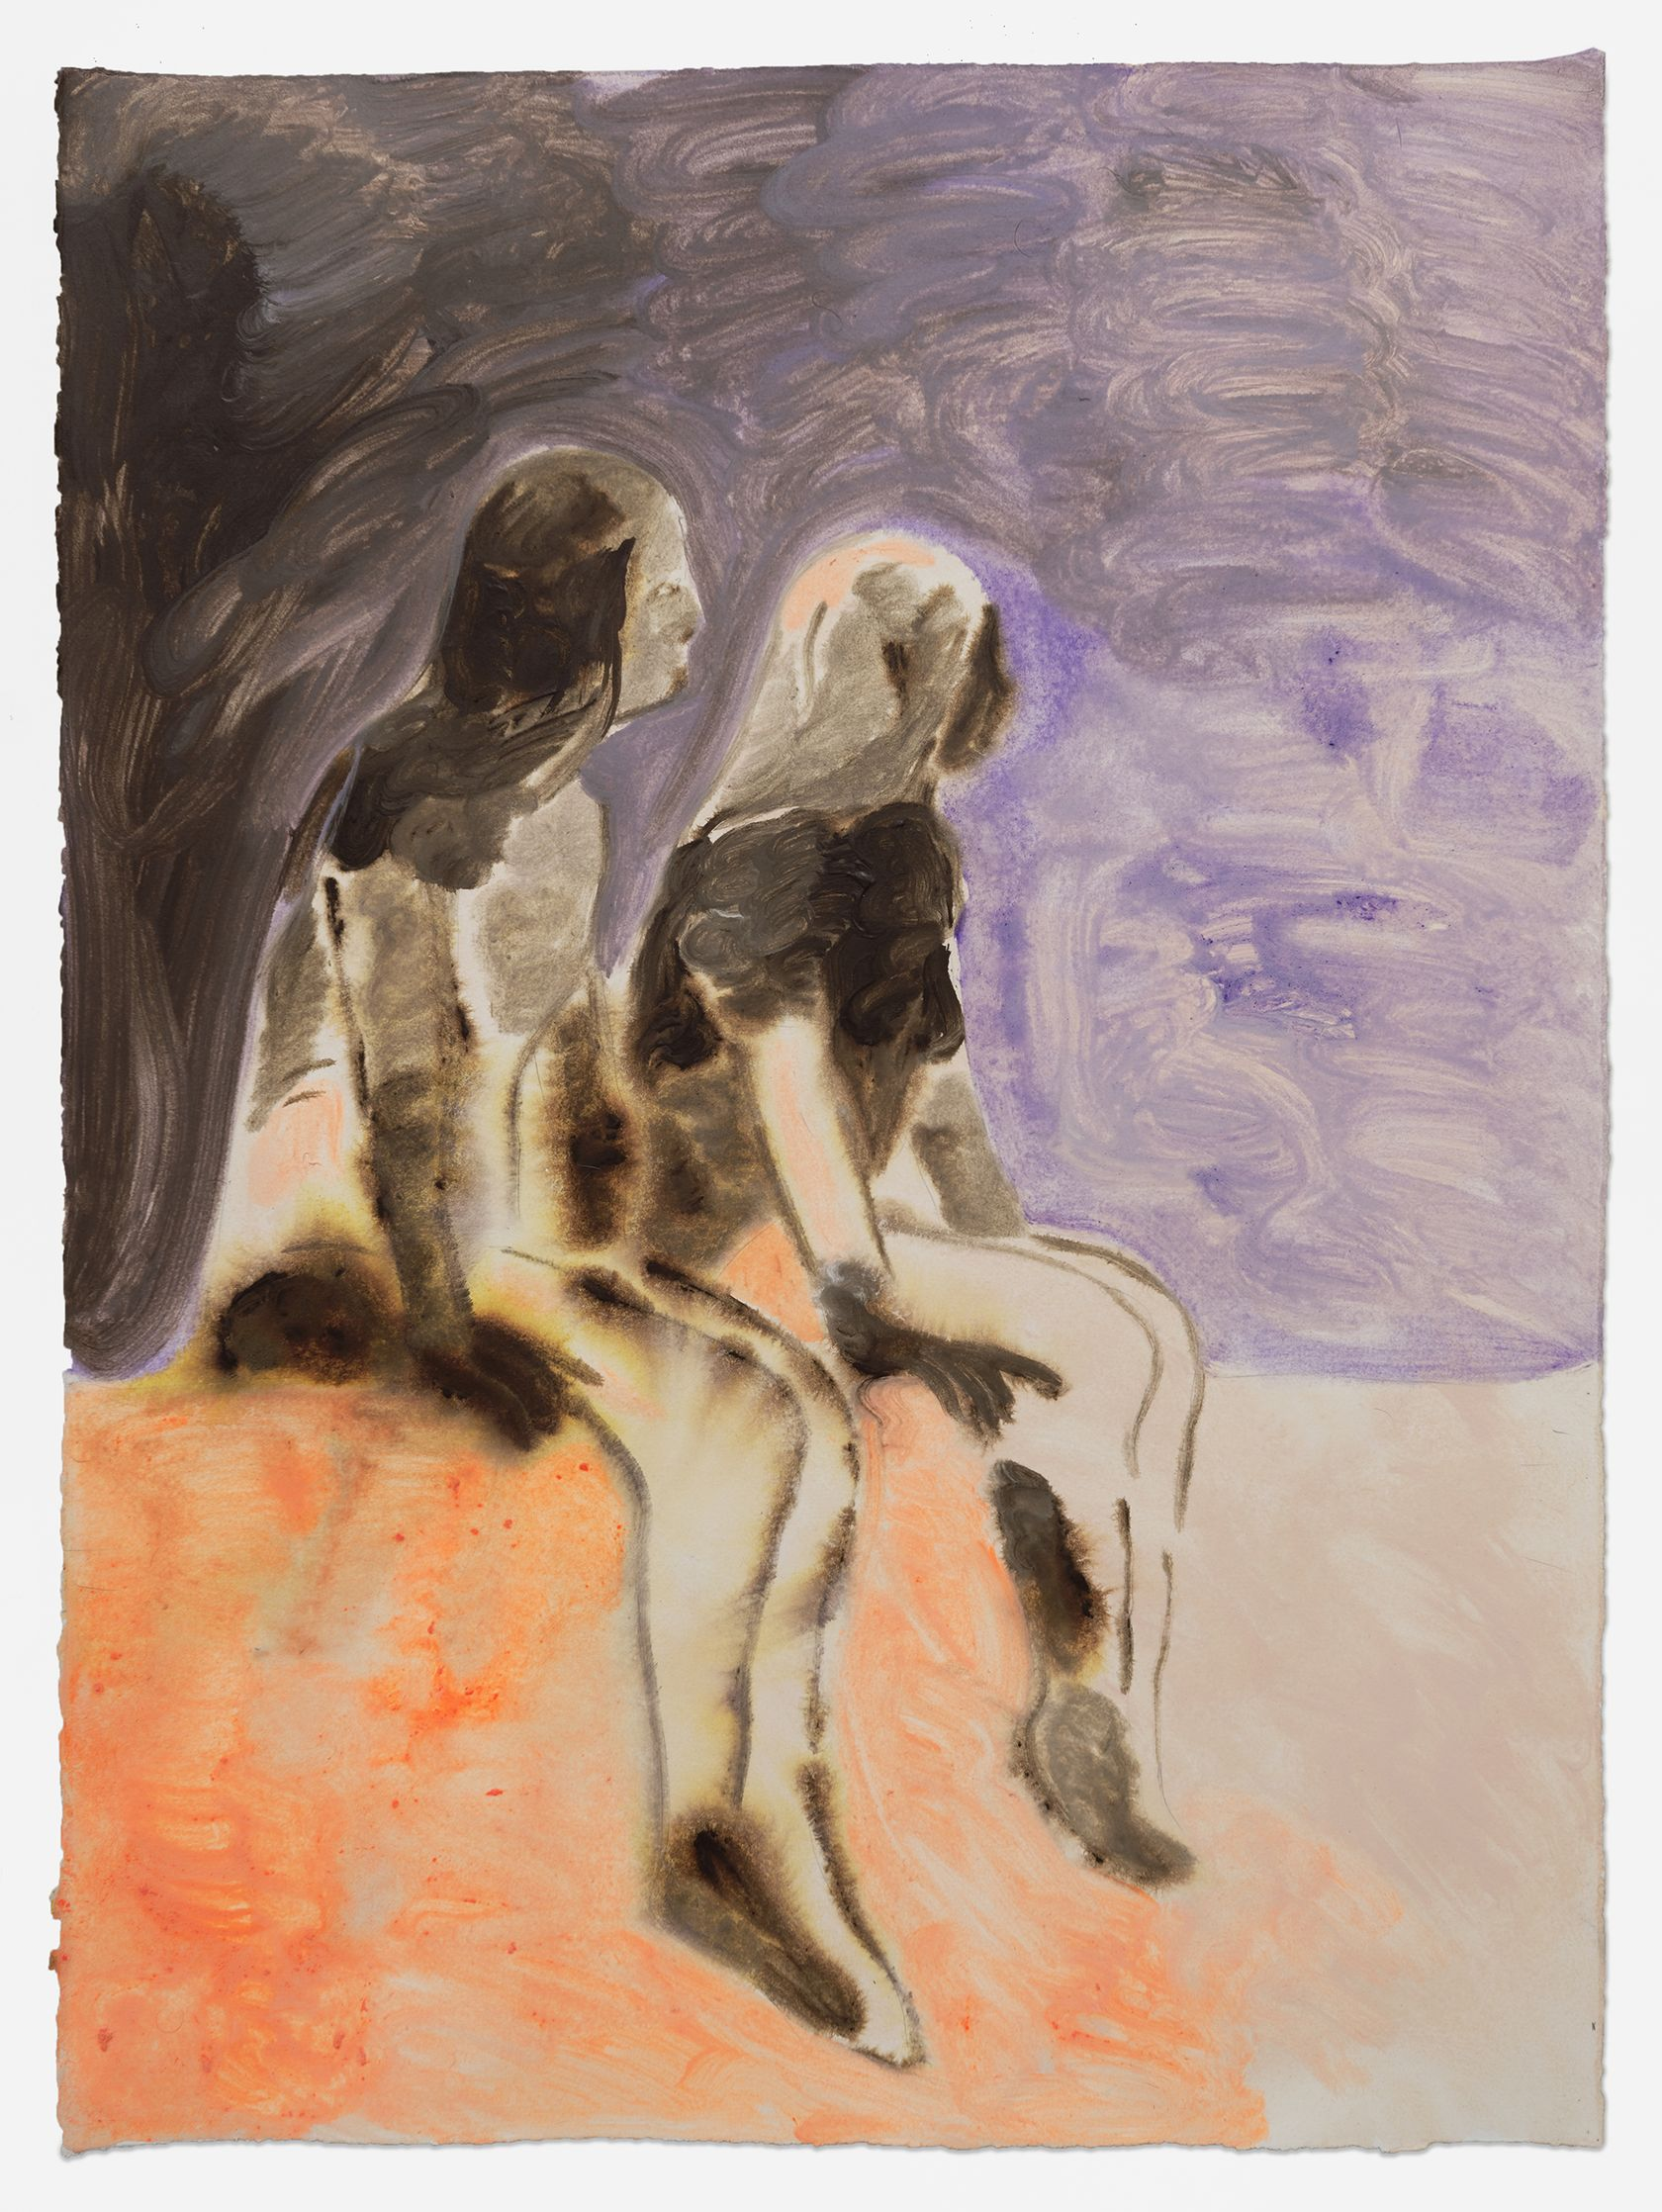 Anthony Cudahy, Two girls waiting, 2021 Acrylique sur papier76 × 56 cm / 30 × 22 in. | 83.5 × 63.5 × 3.5 cm / 32 7/8 × 25  × 1 3/8 in. (encadré/framed)